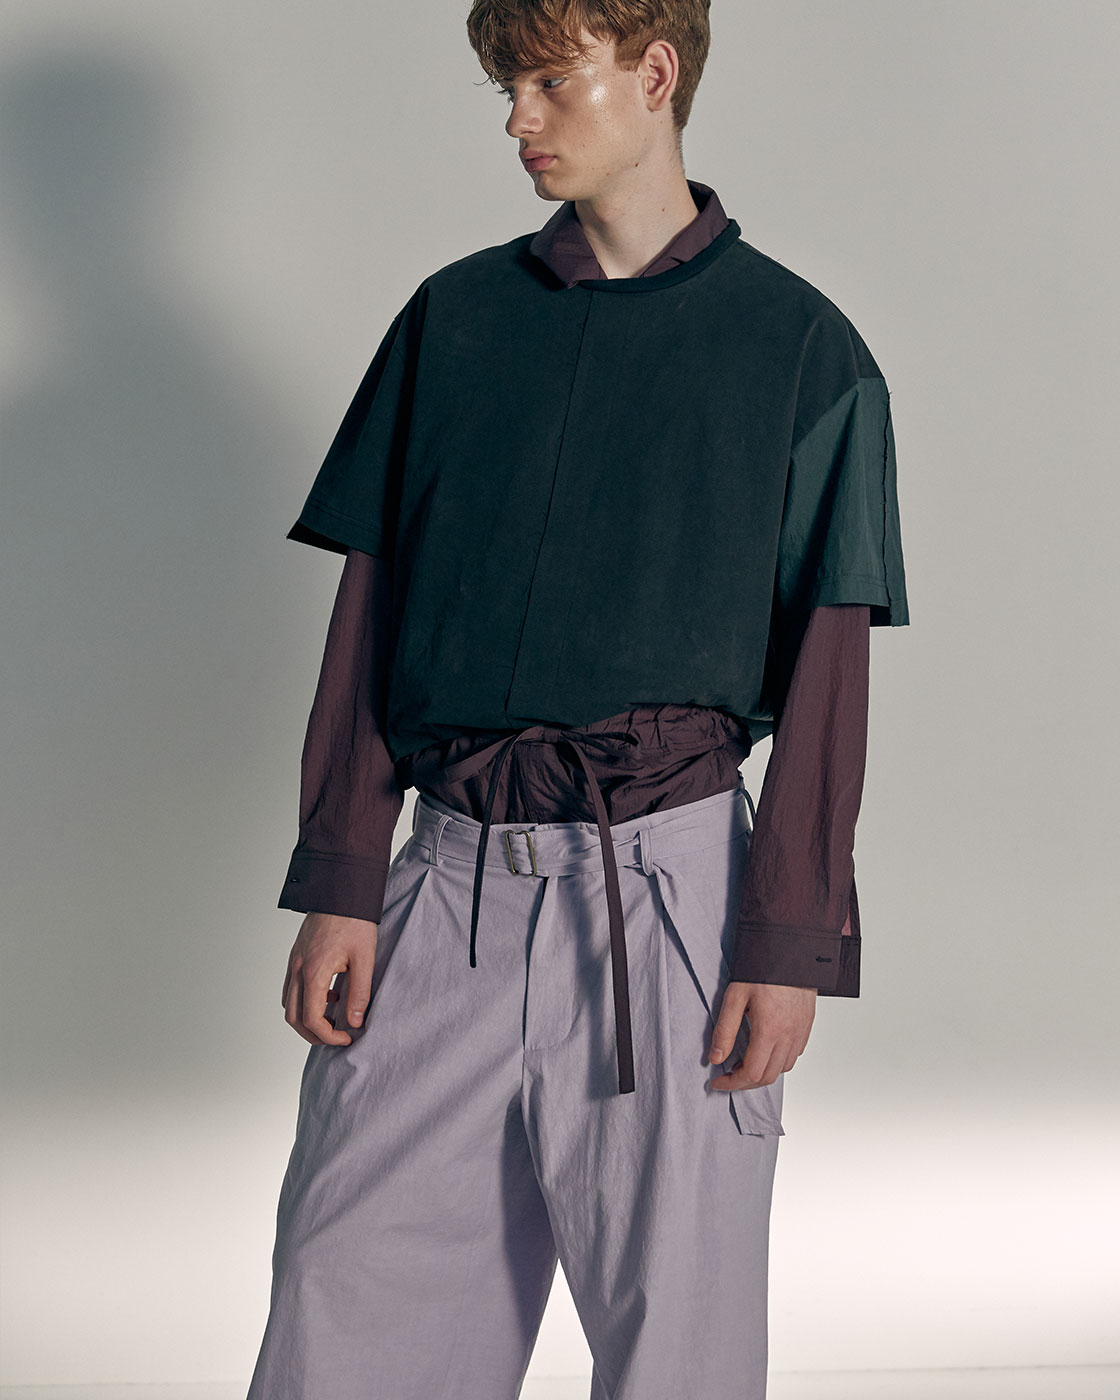 Color Blocking Sleeve Seam Out Basic Woven Top